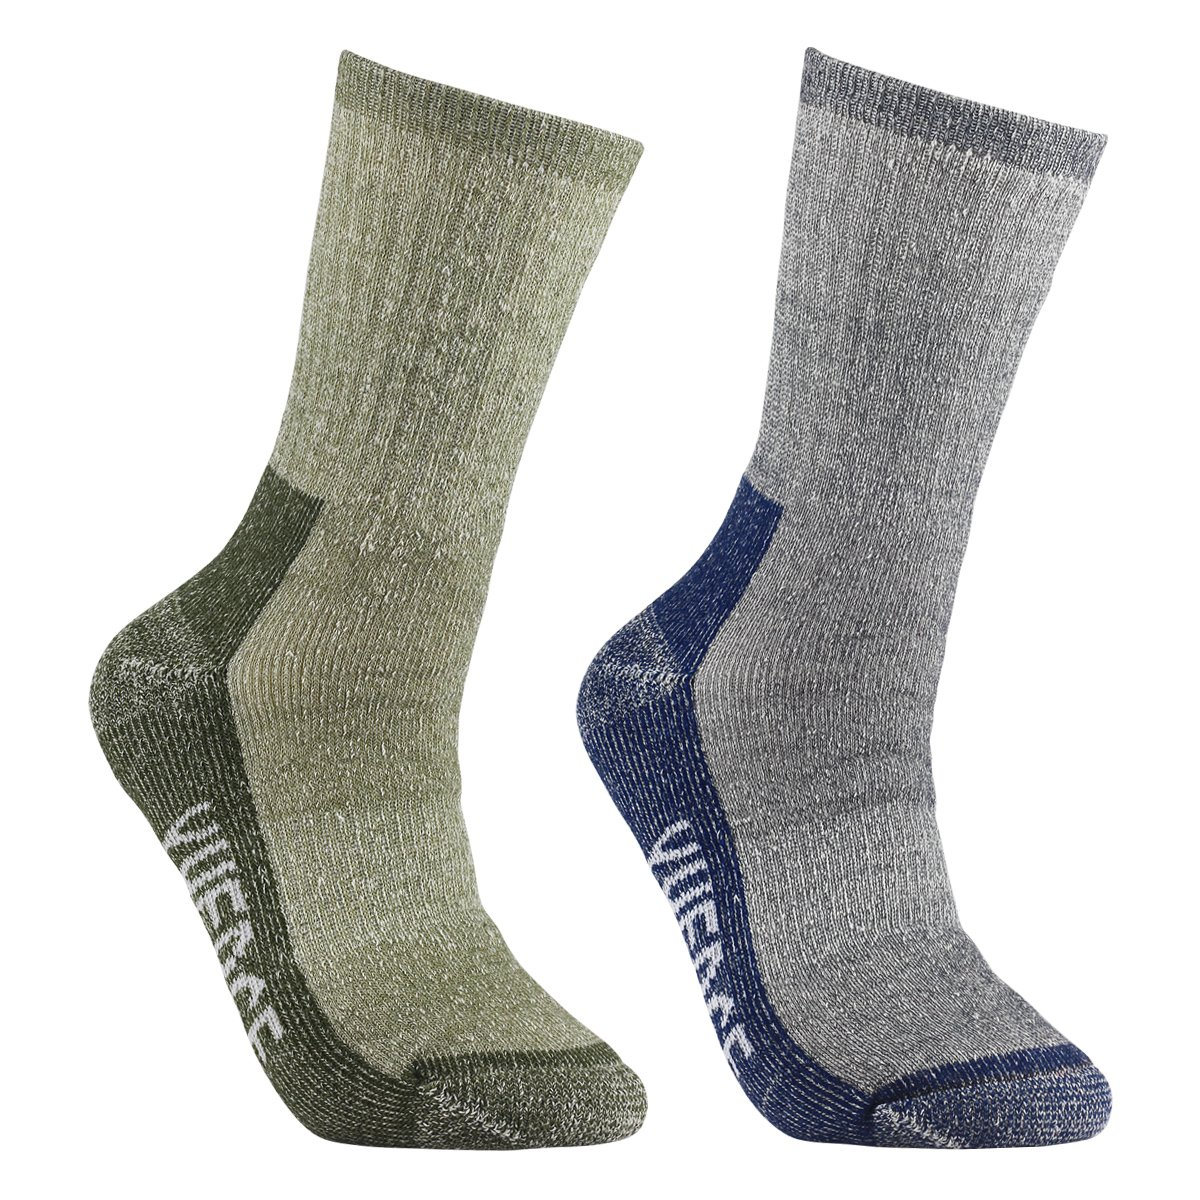 YUEDGE Men's Merino Wool Crew Socks For Hiking Backpacking Trekking Climbing YUEDGE Mens Wool Socks